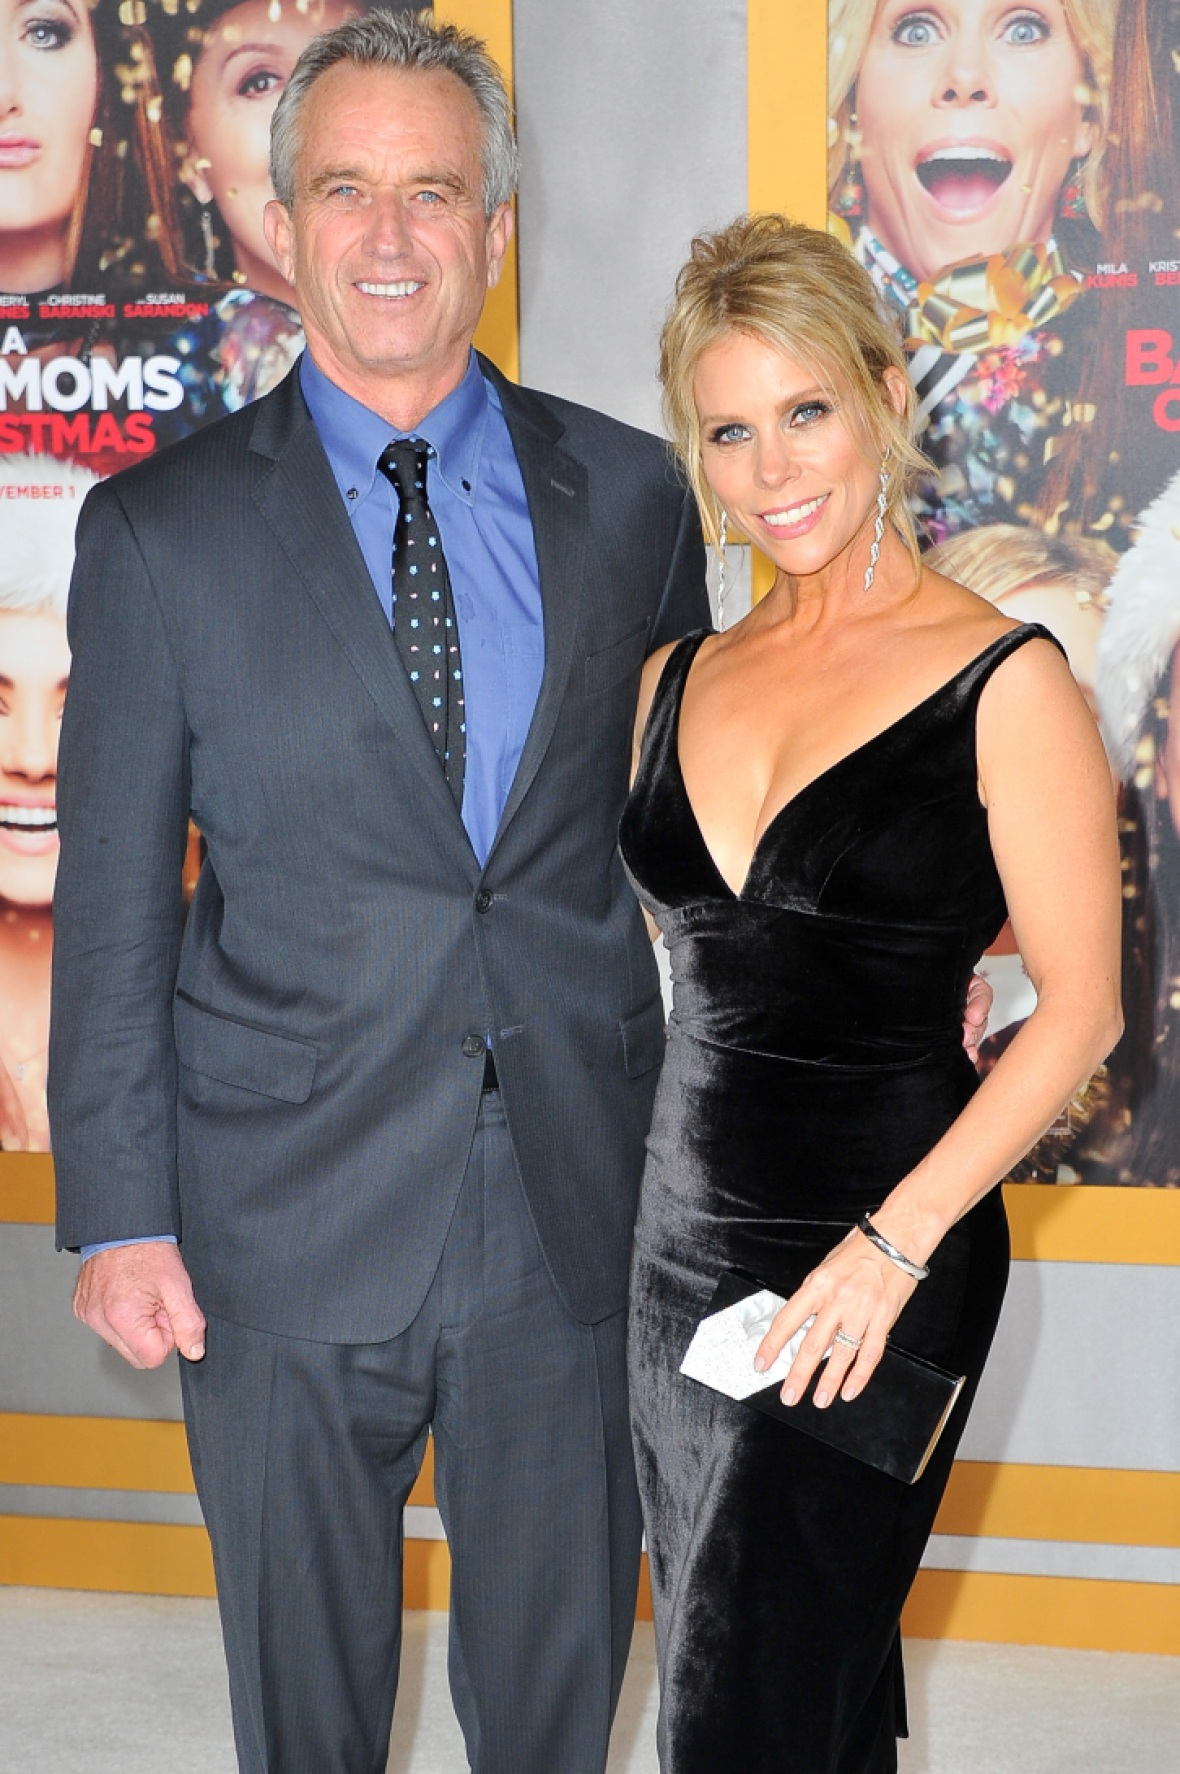 cheryl hines and her husband getty images